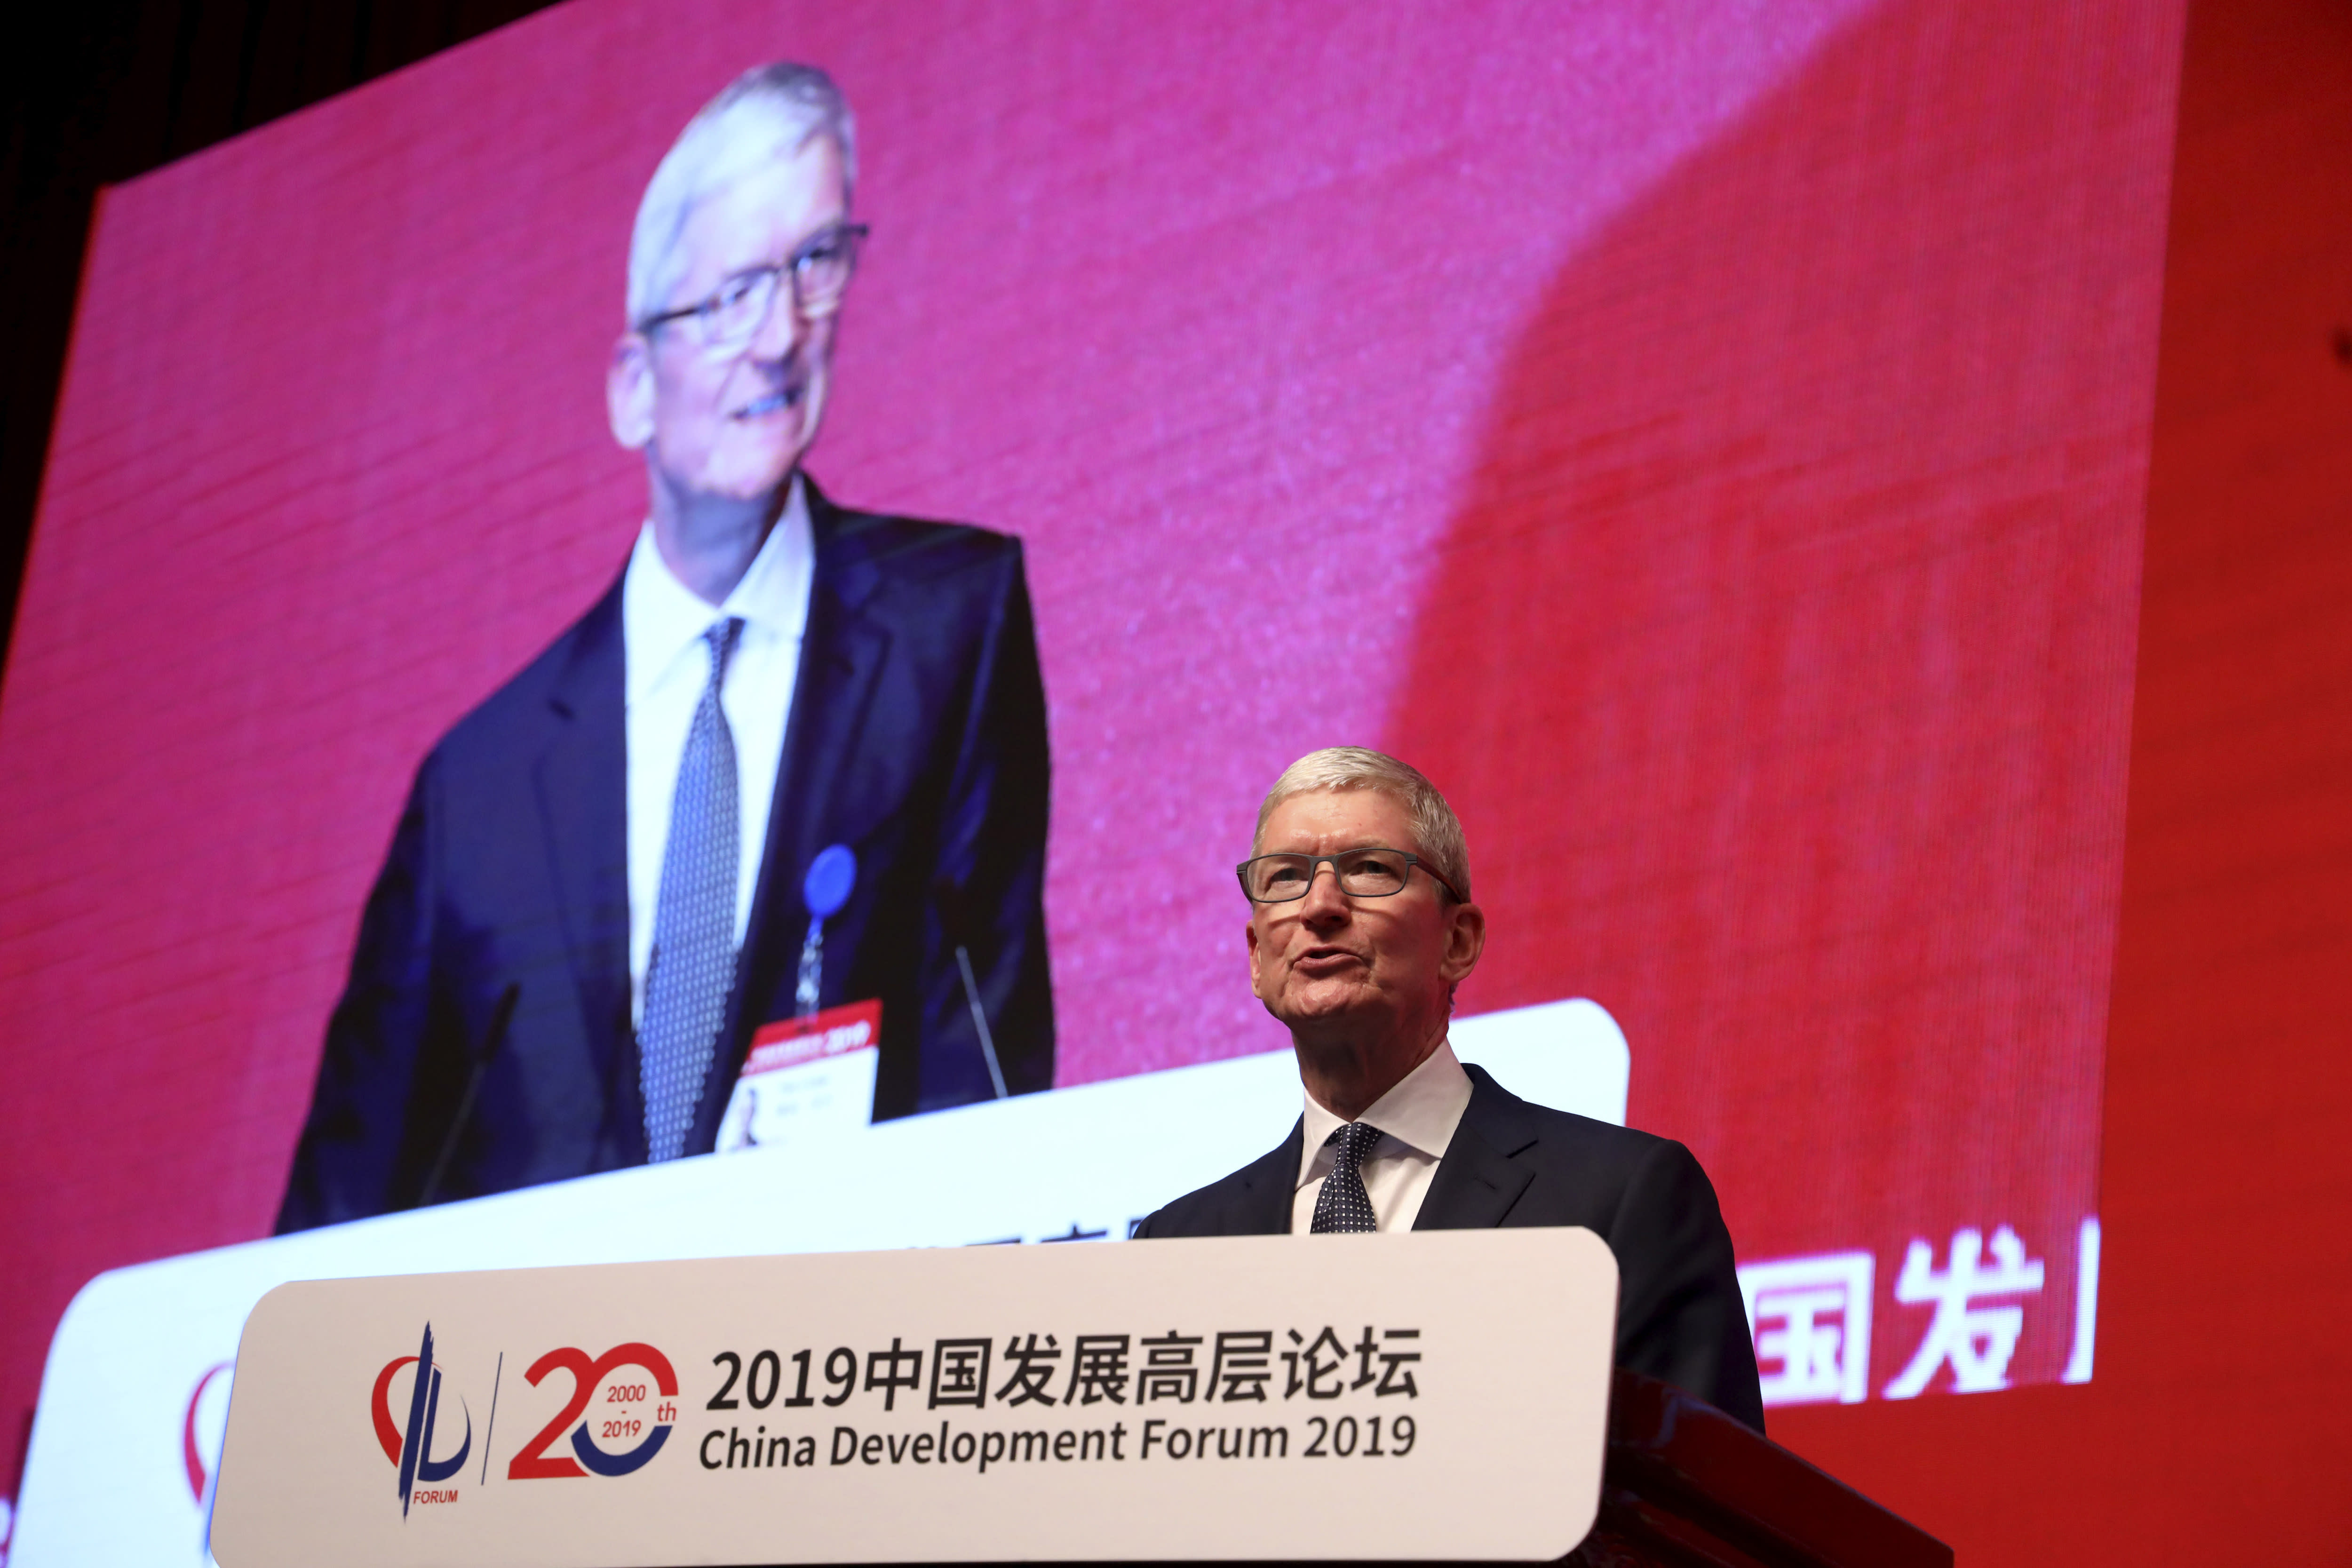 """Apple CEO Tim Cook speaks at the Economic Summit held for the China Development Forum in Beijing, China, Saturday, March 23, 2019. Cook says he's """"extremely bullish"""" about the global economy based on the amount of innovation being carried out, and he's urging China to continue to """"open up."""" (AP Photo/Ng Han Guan)"""